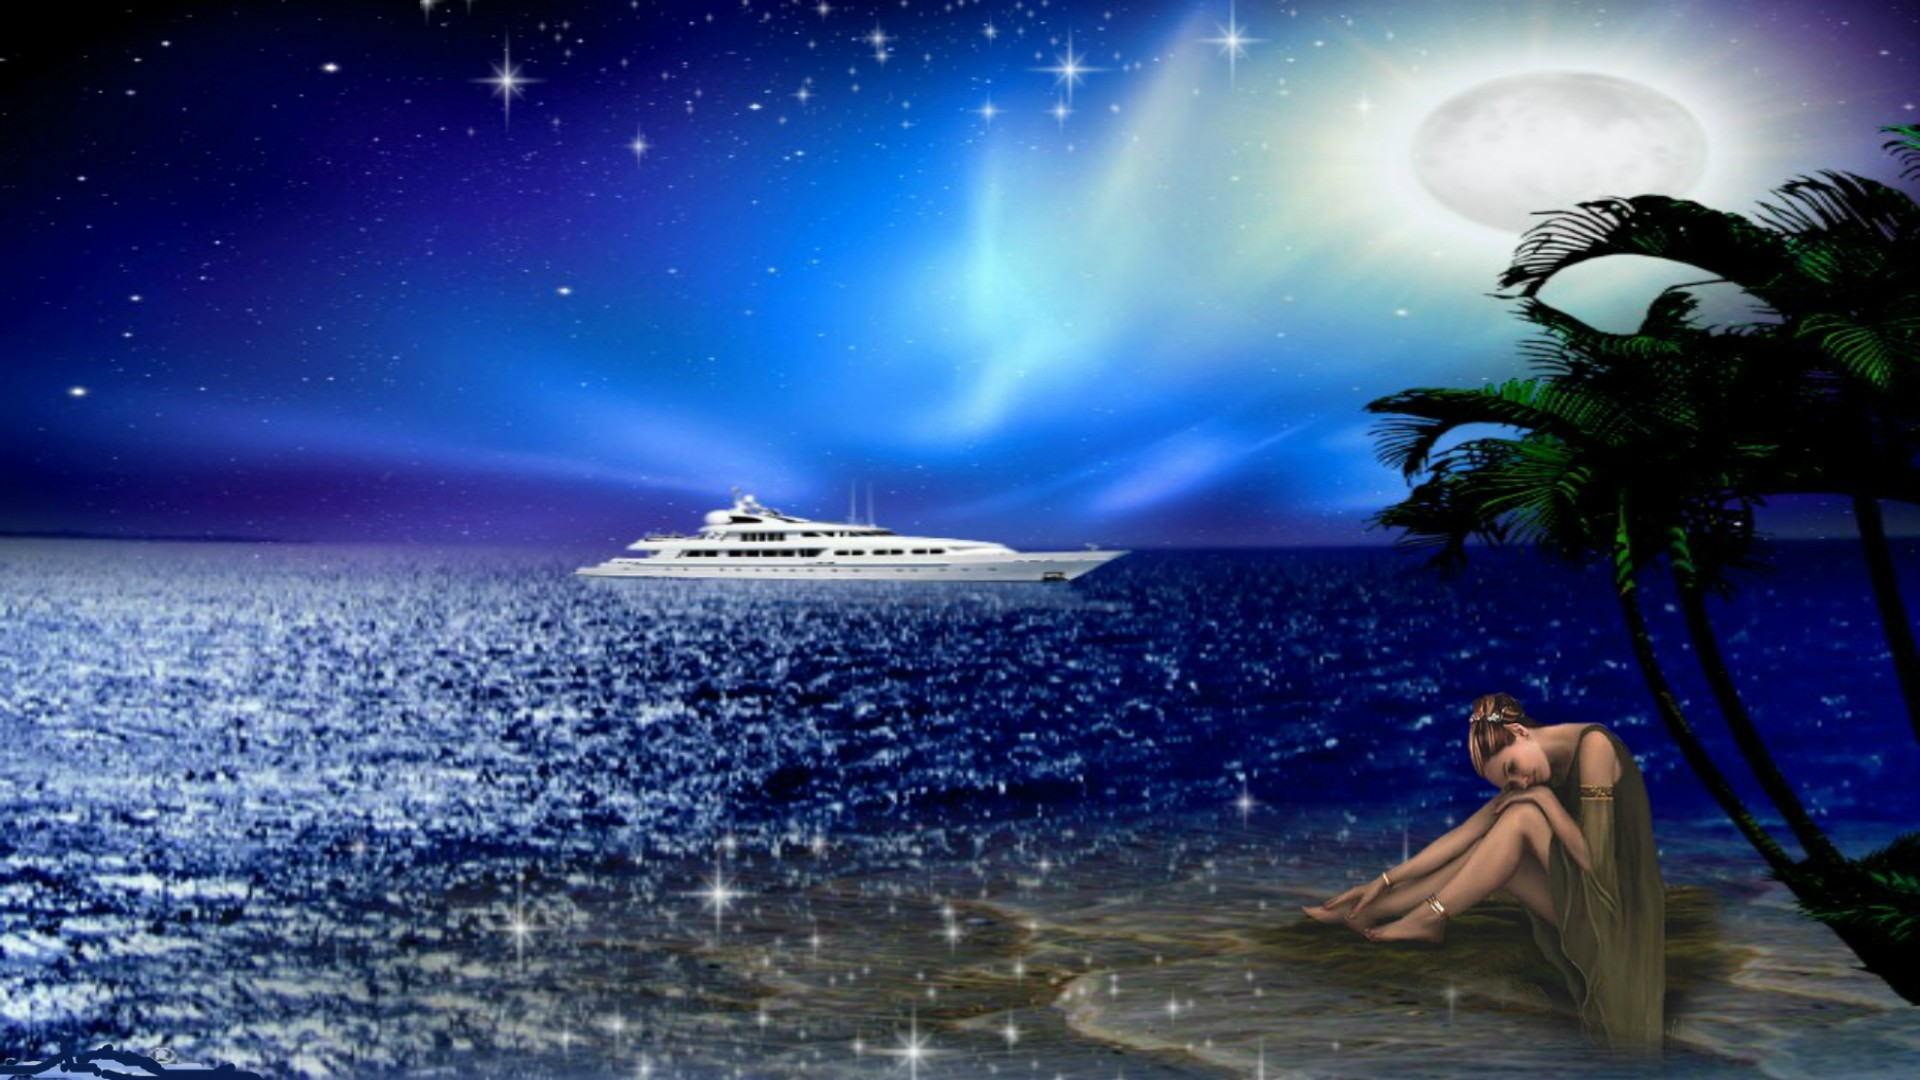 Res: 1920x1080, Sadness Beach Fantasy Loneliness Night Ship Full Moon Wallpaper For Phone